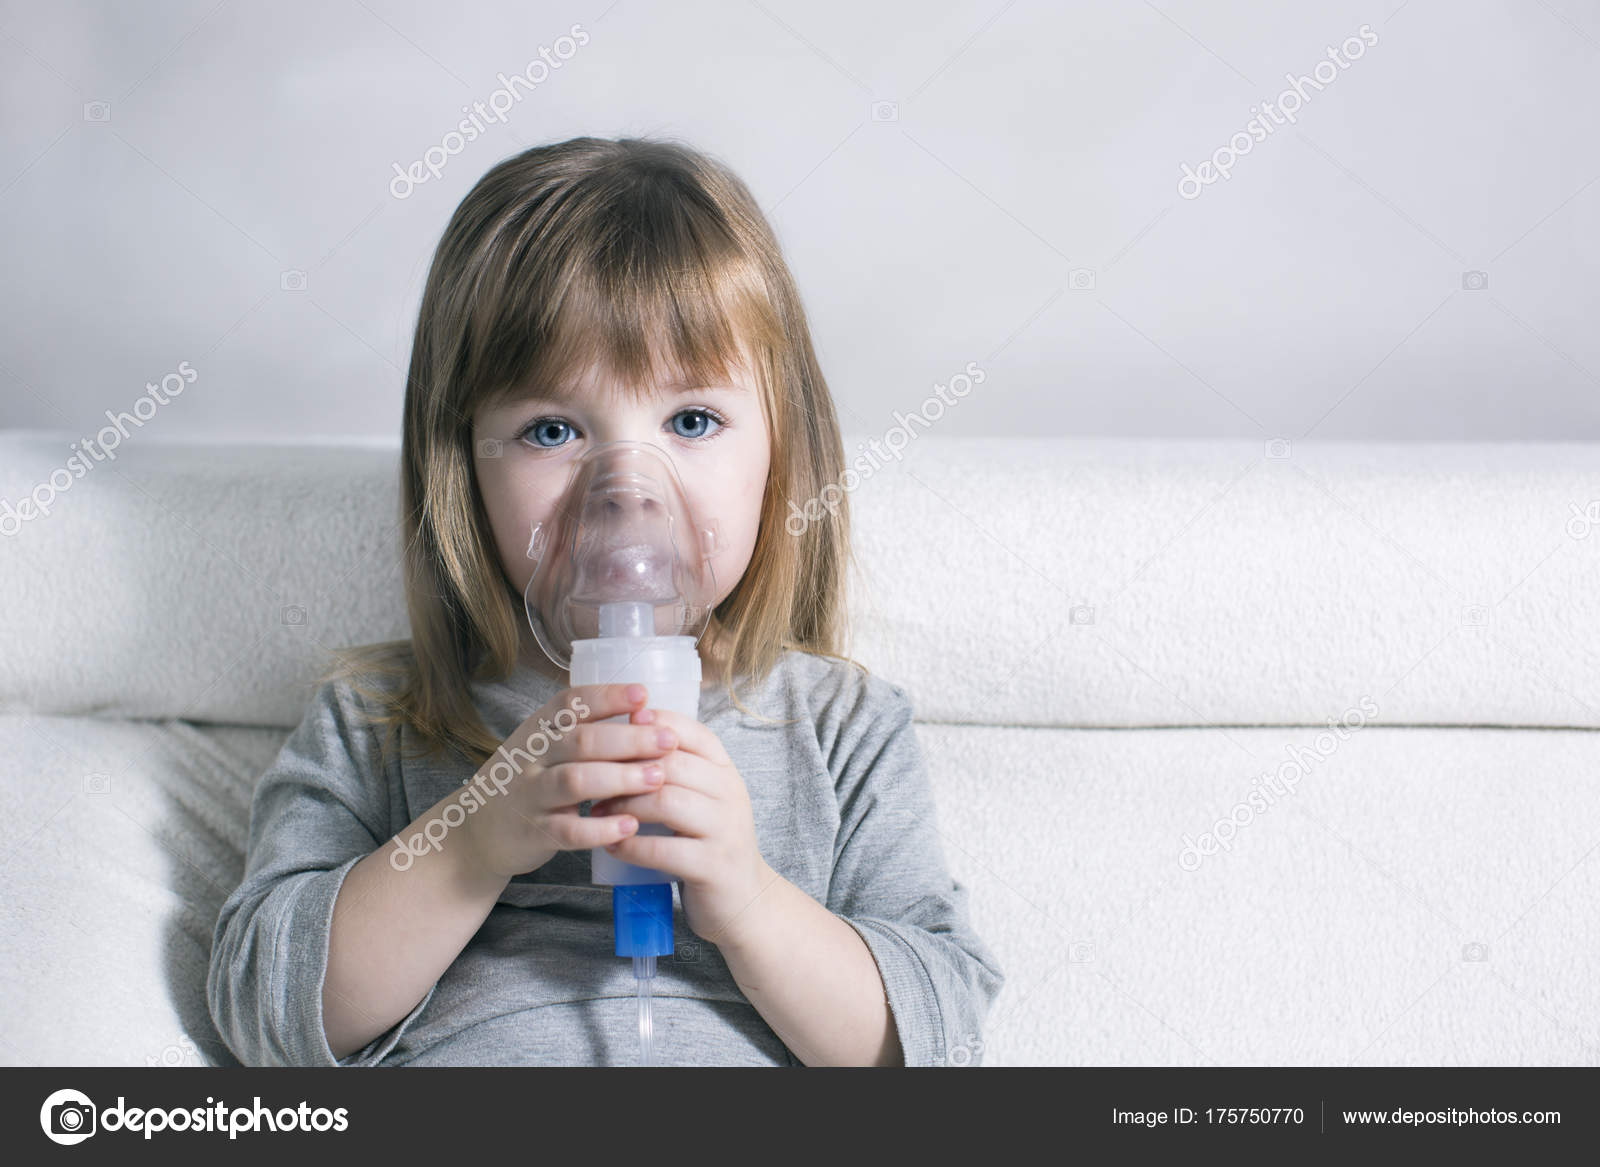 Little girl making inhalation with nebulizer at home child asthma